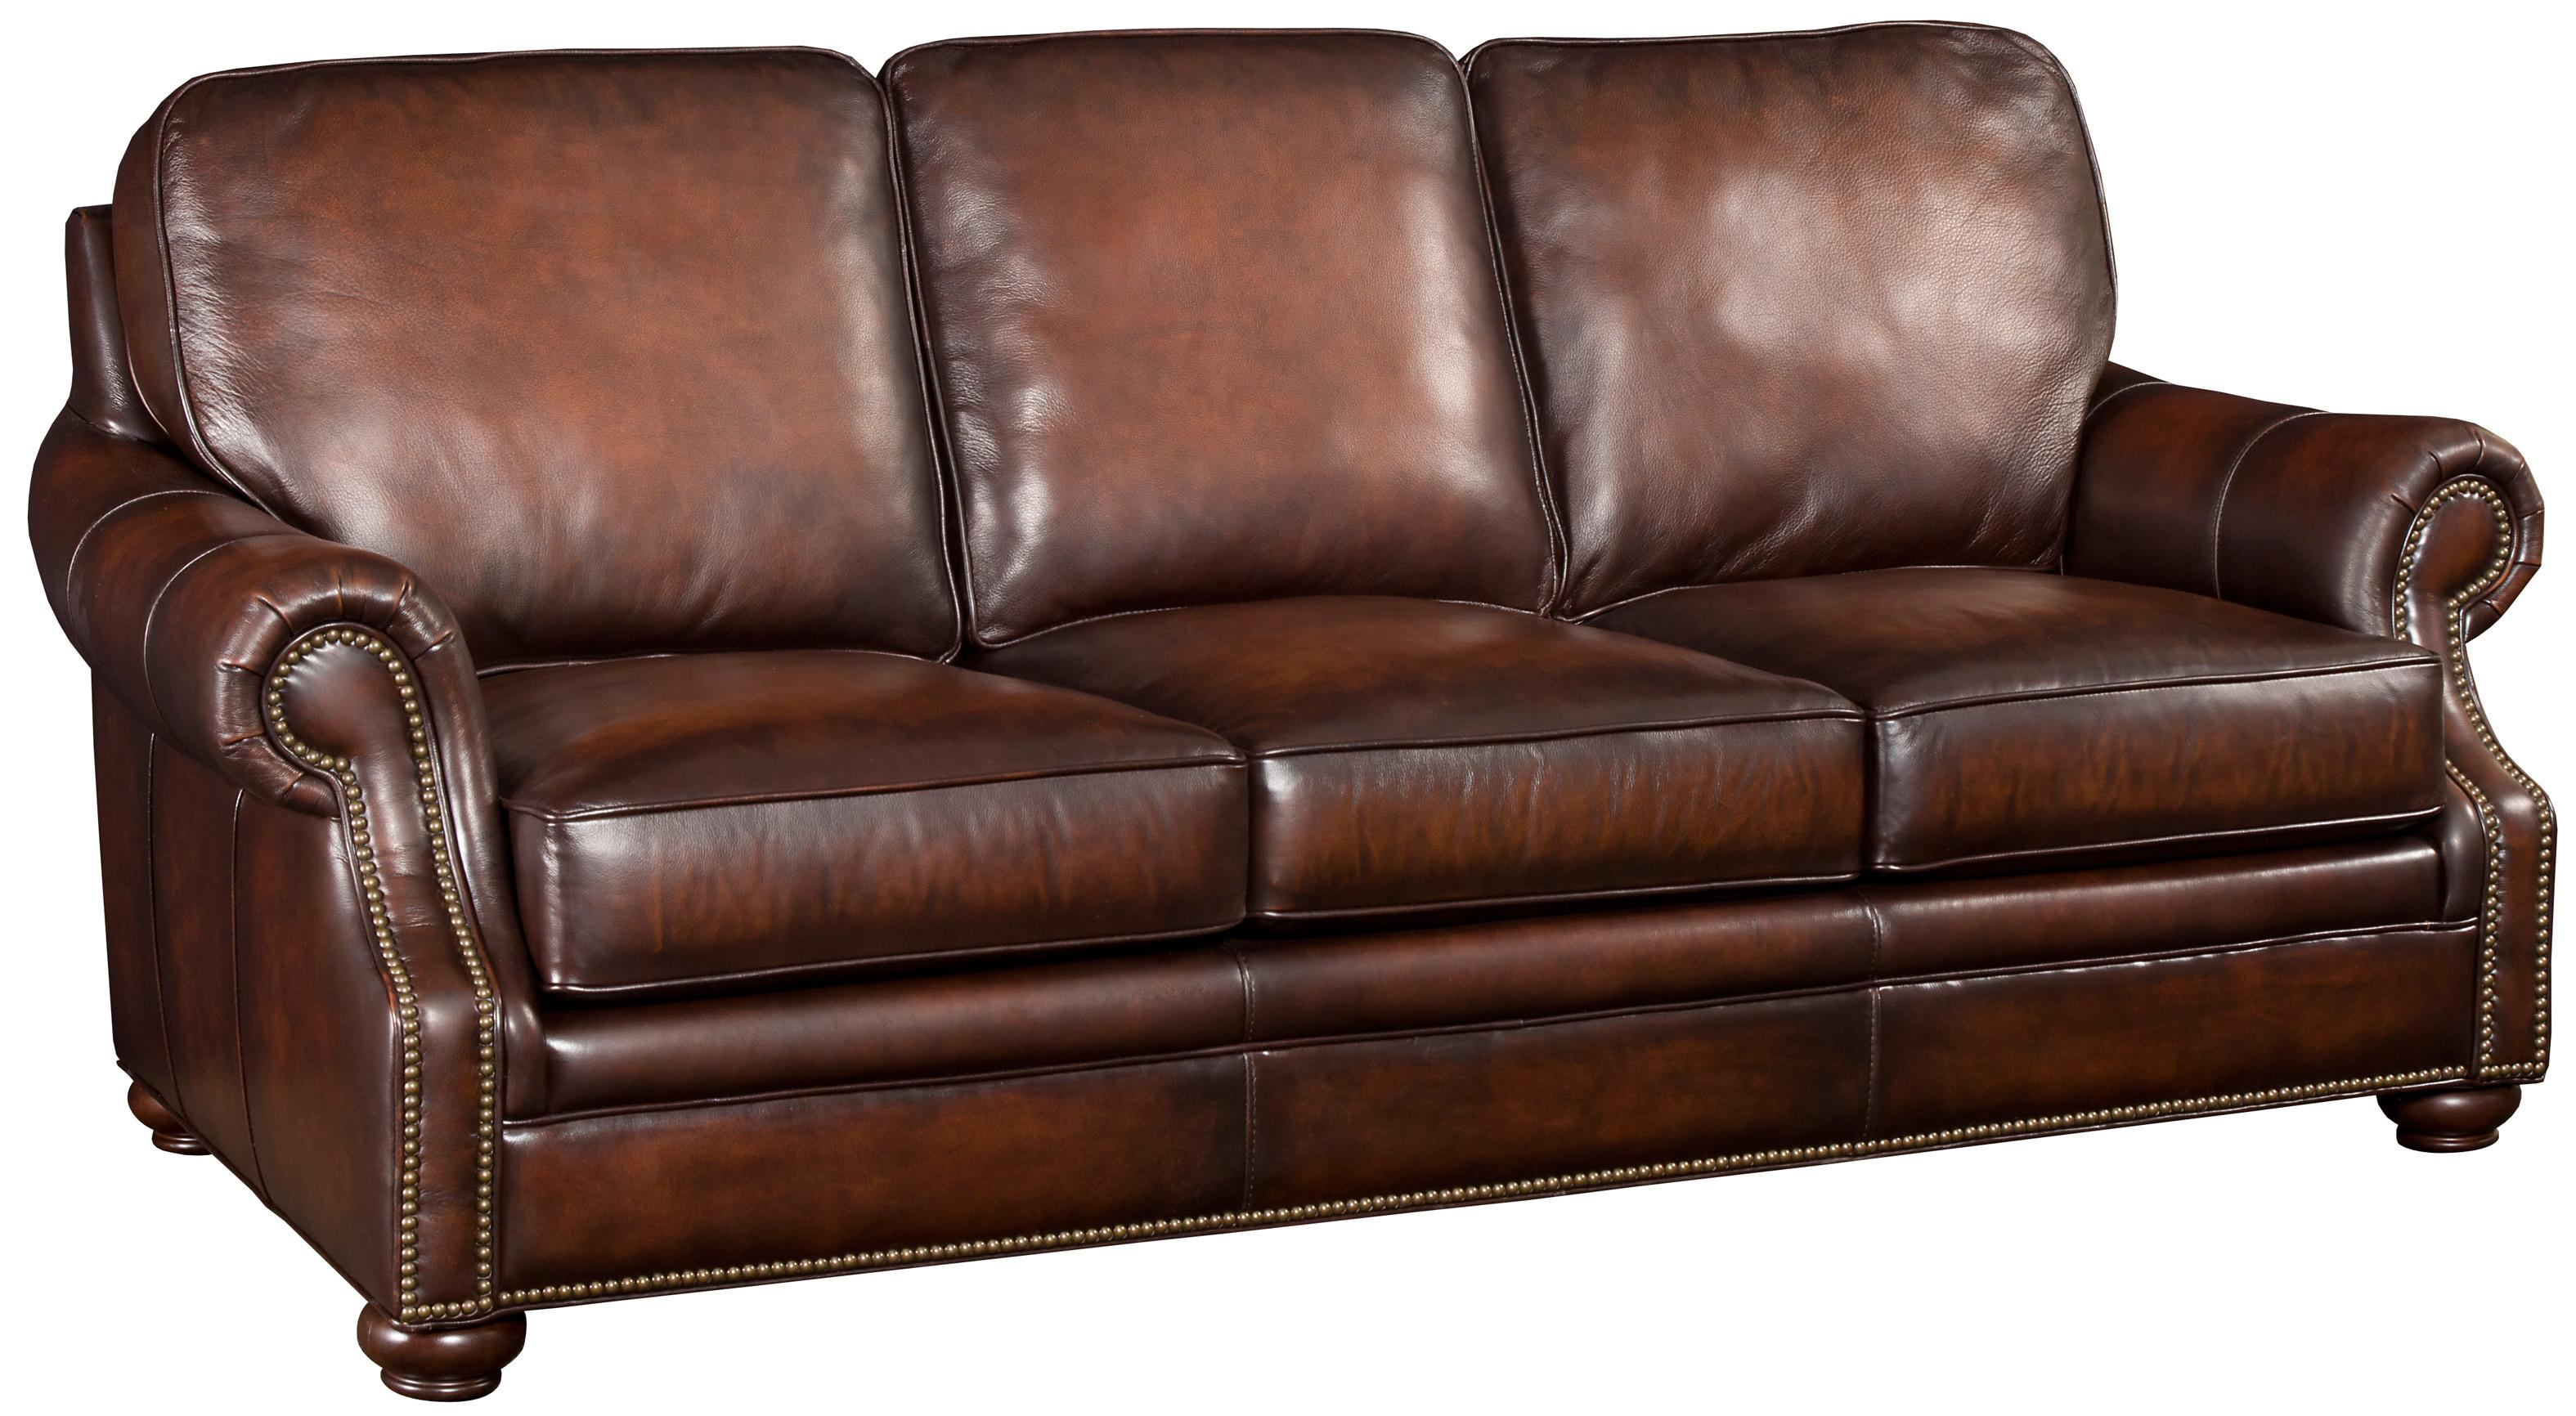 buckskin sofa crate and barrel evie bed hooker furniture ss185 brown leather with wood